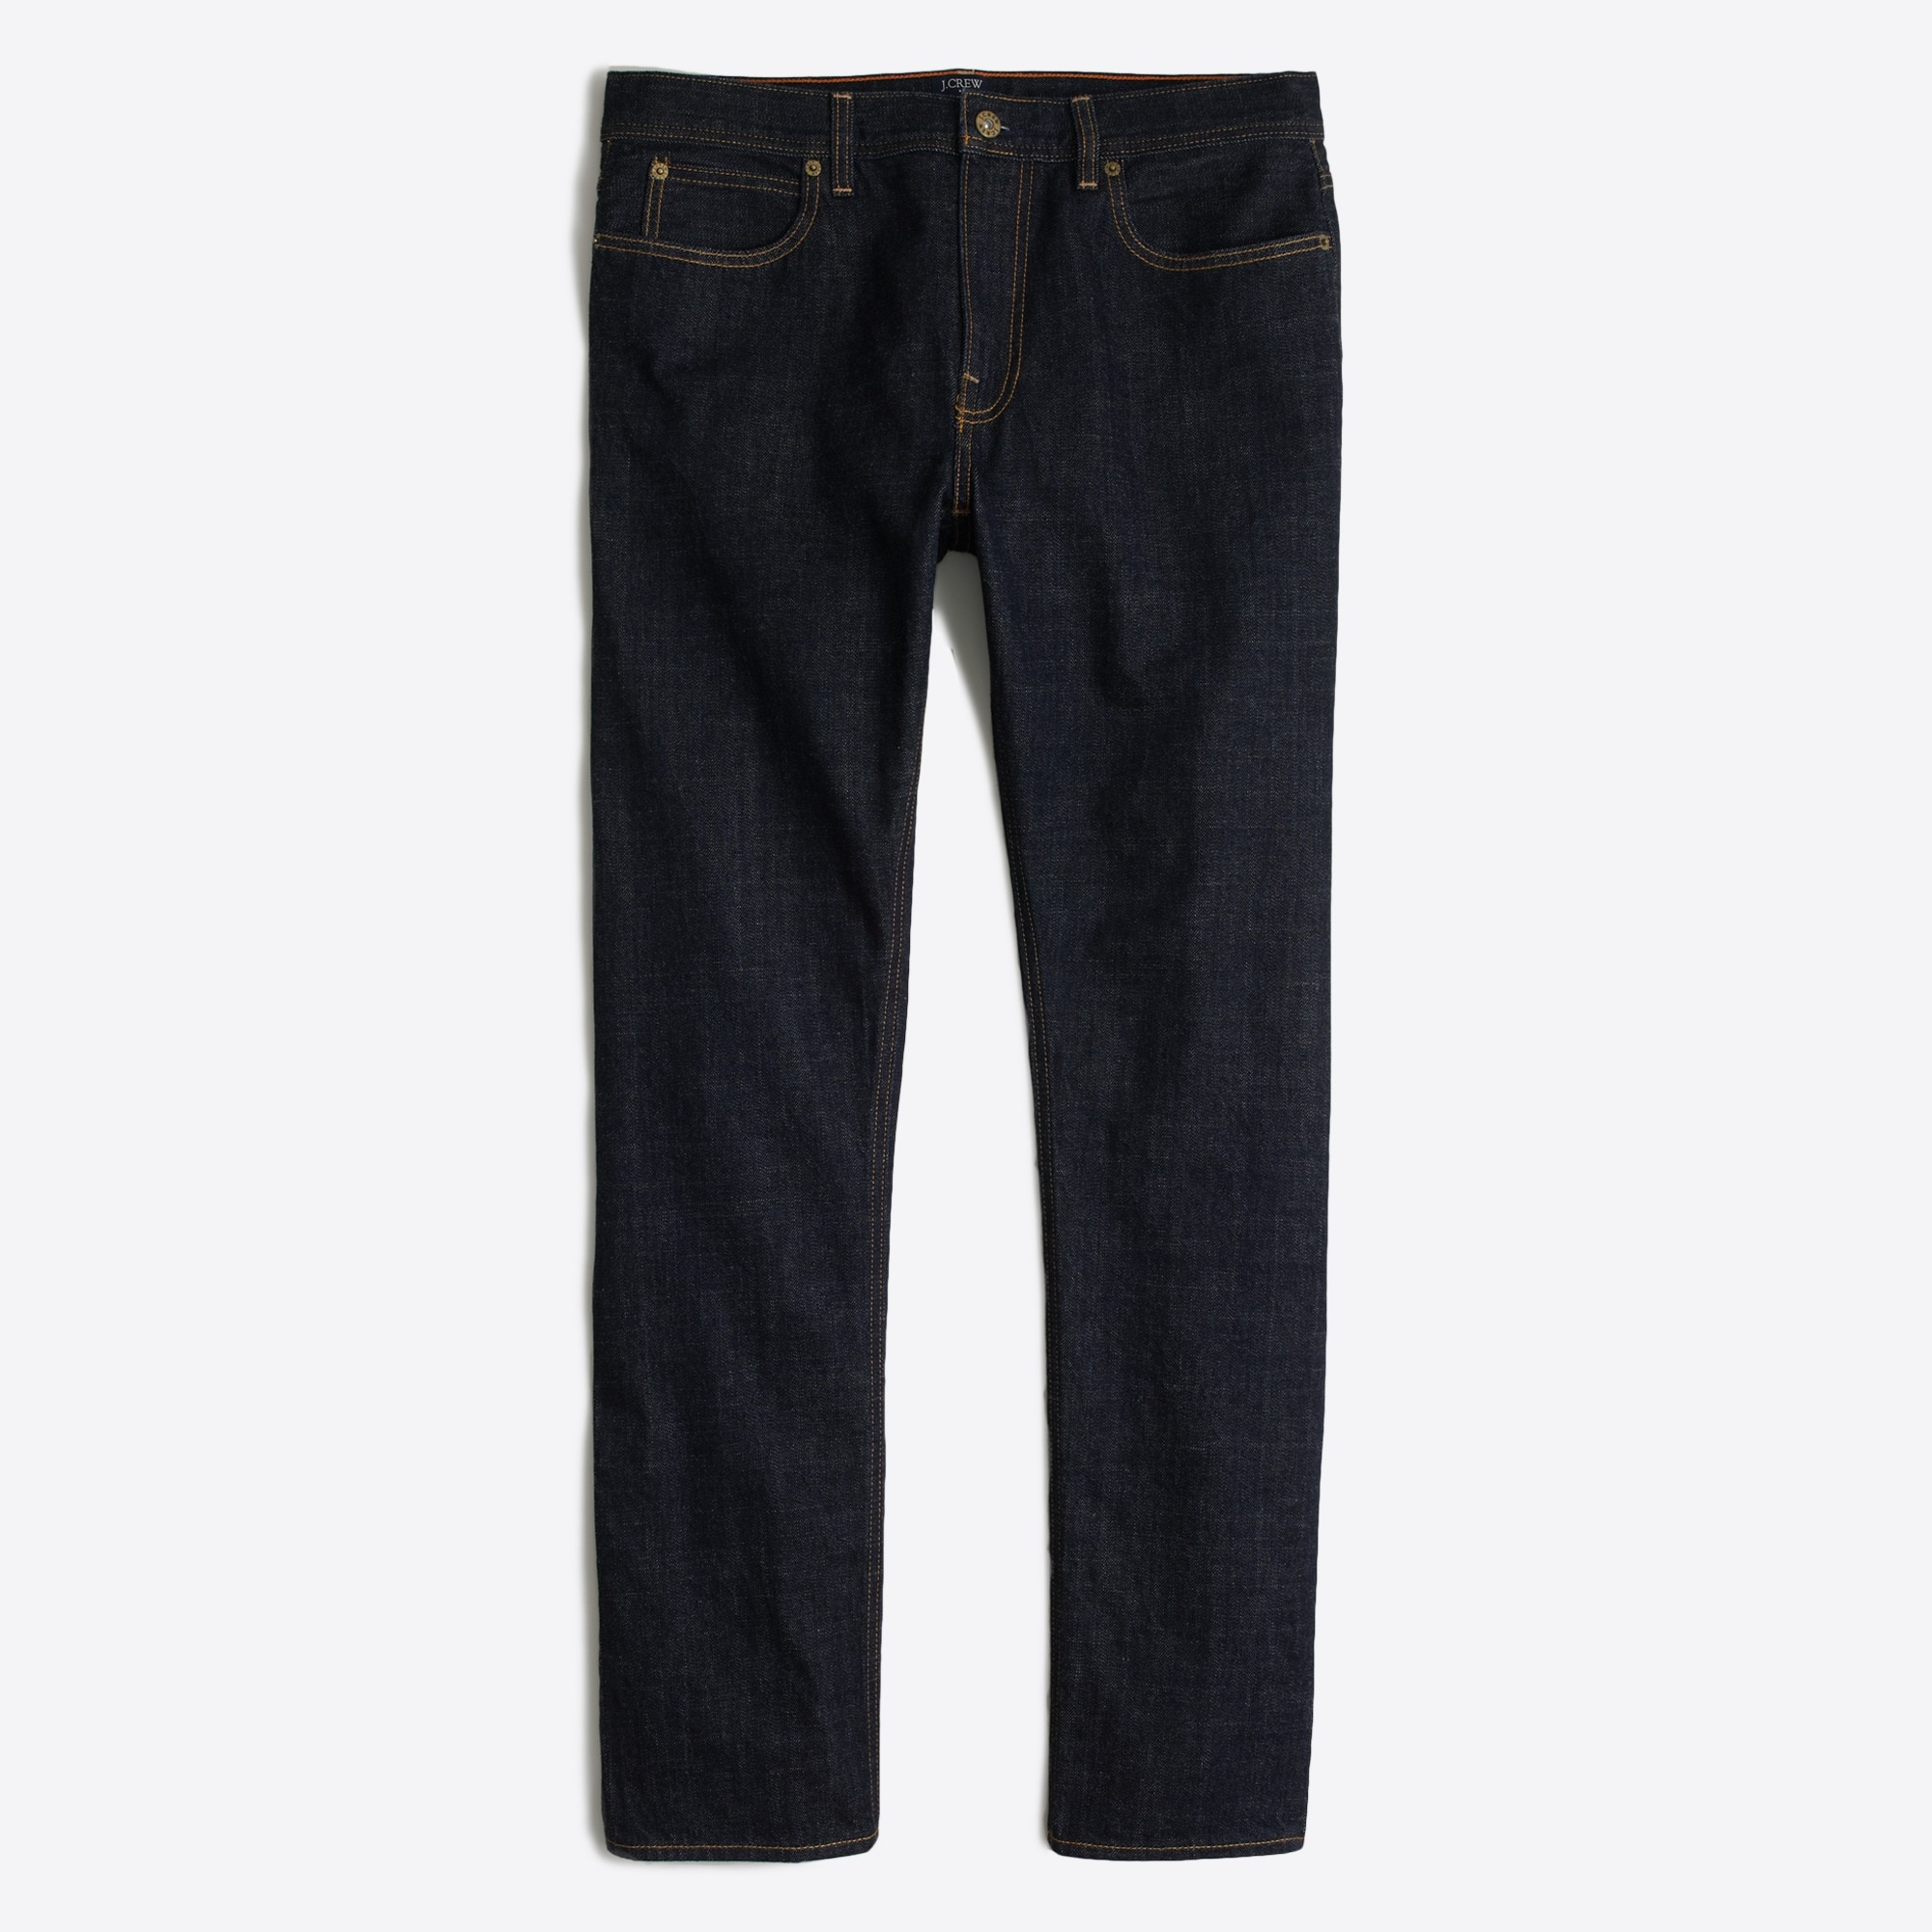 sutton straight-fit selvedge jean in dark wash : factorymen slim